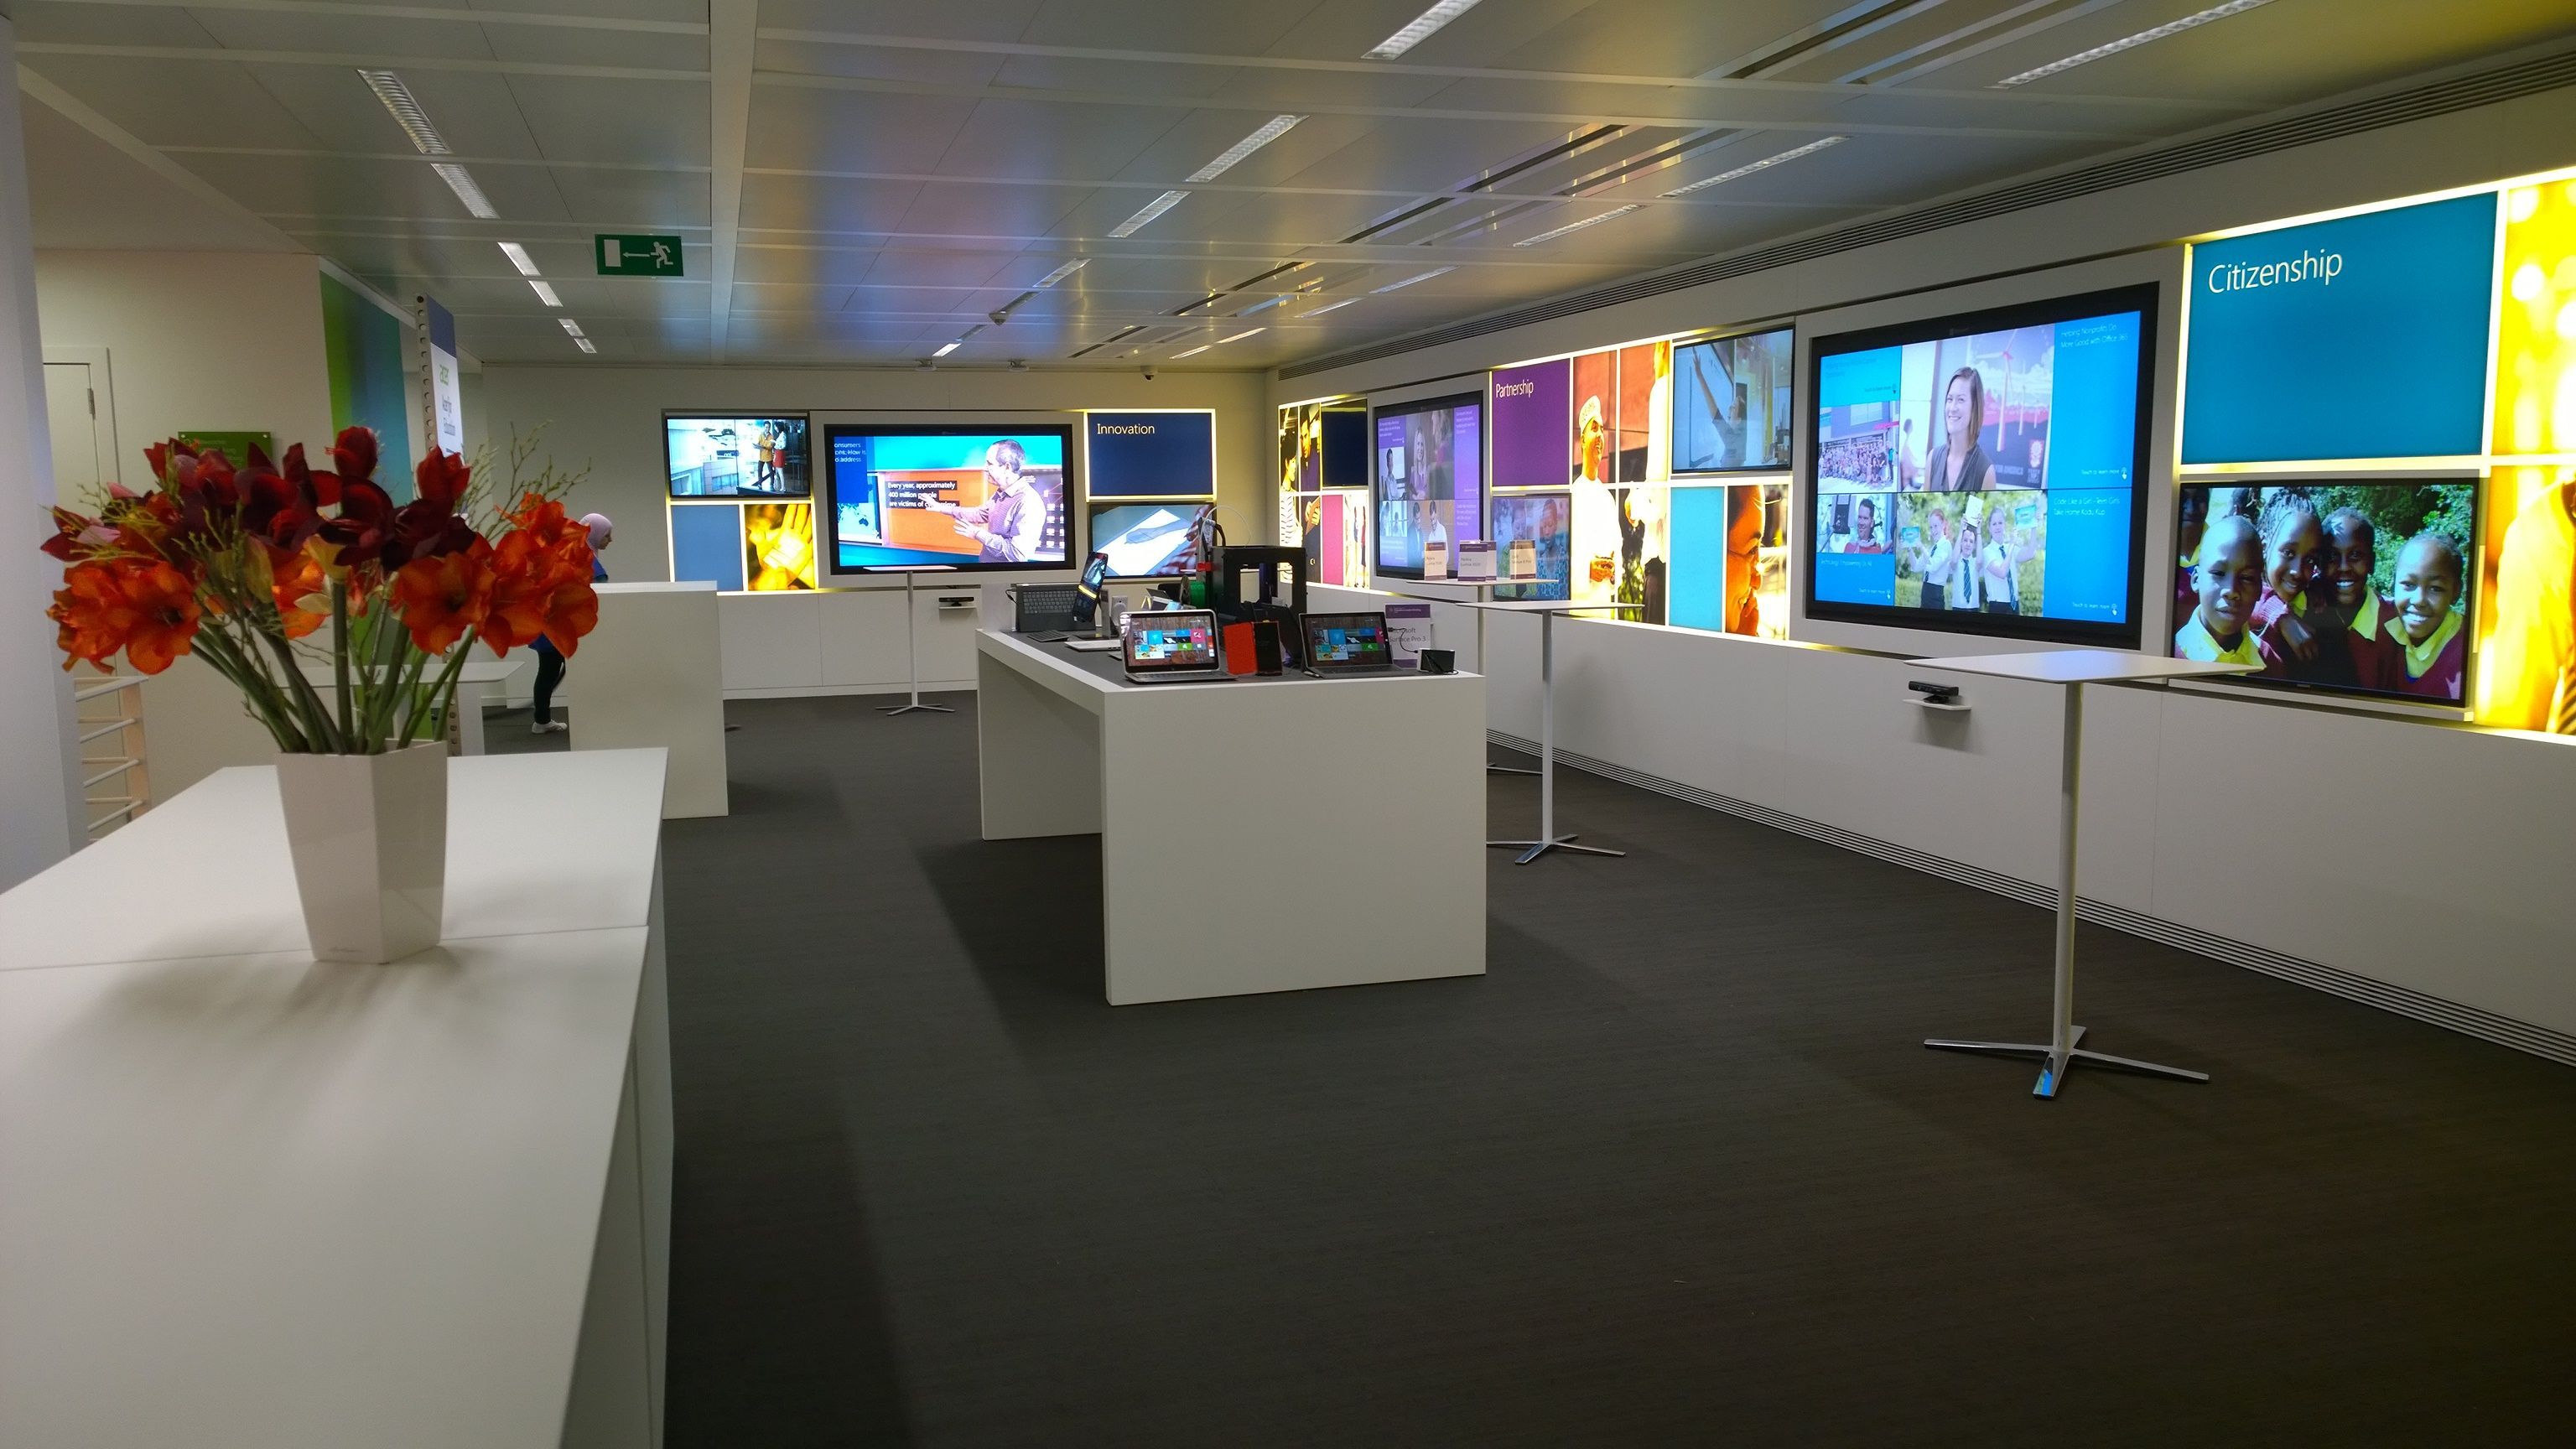 Microsoft Center opens in Brussels | Executive Briefing Centers ...